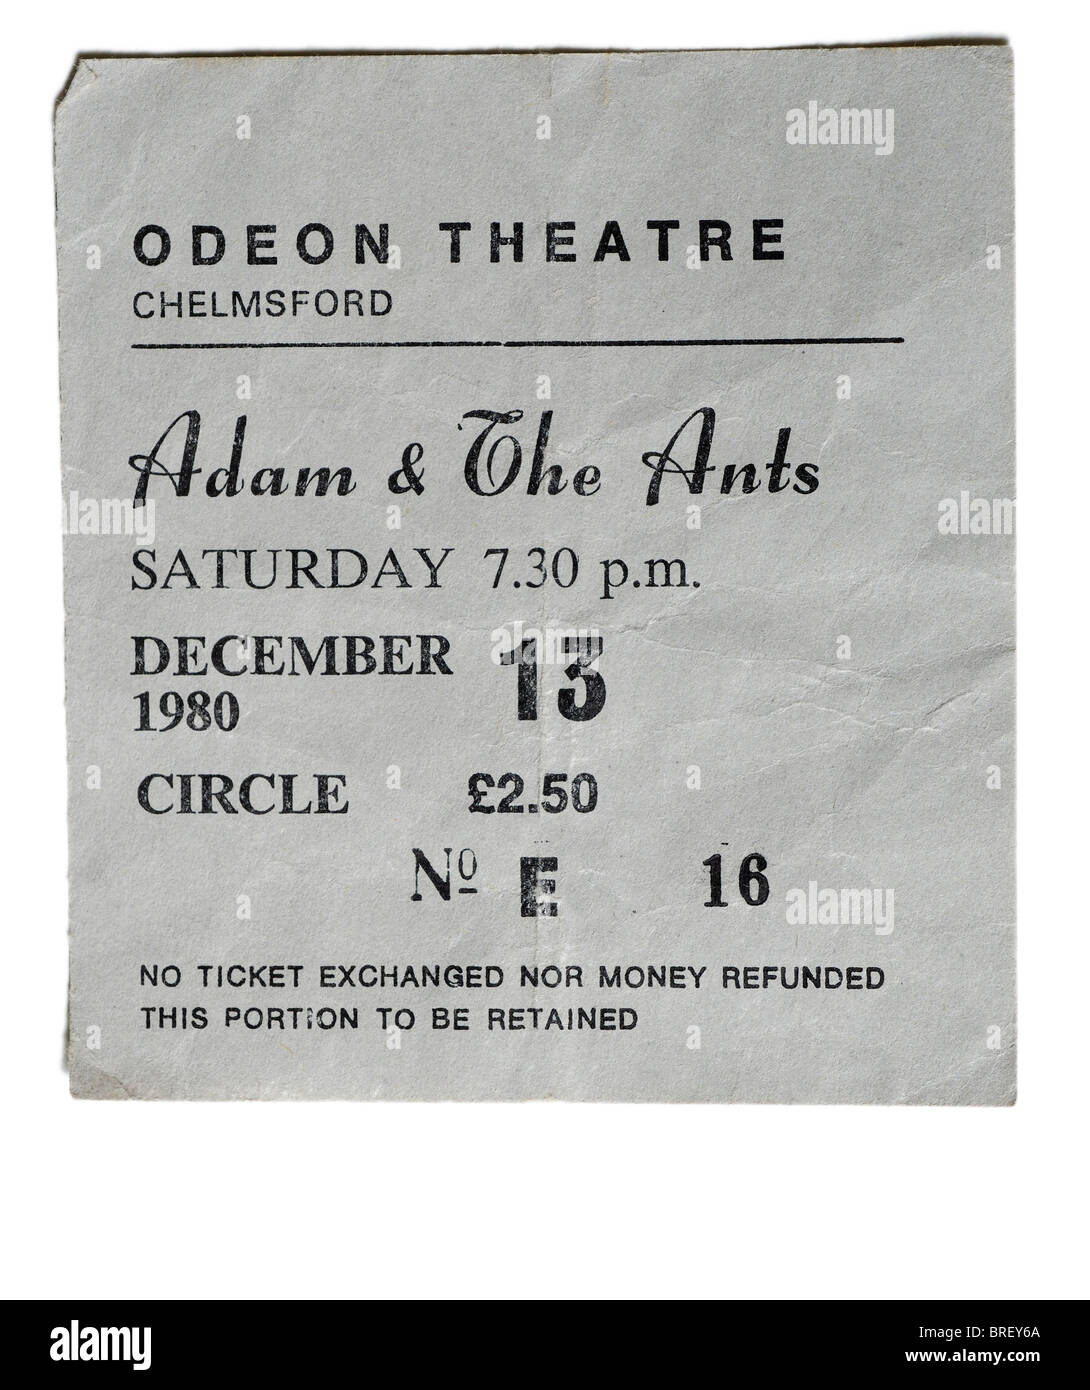 An Adam and the Ants concert ticket - Stock Image